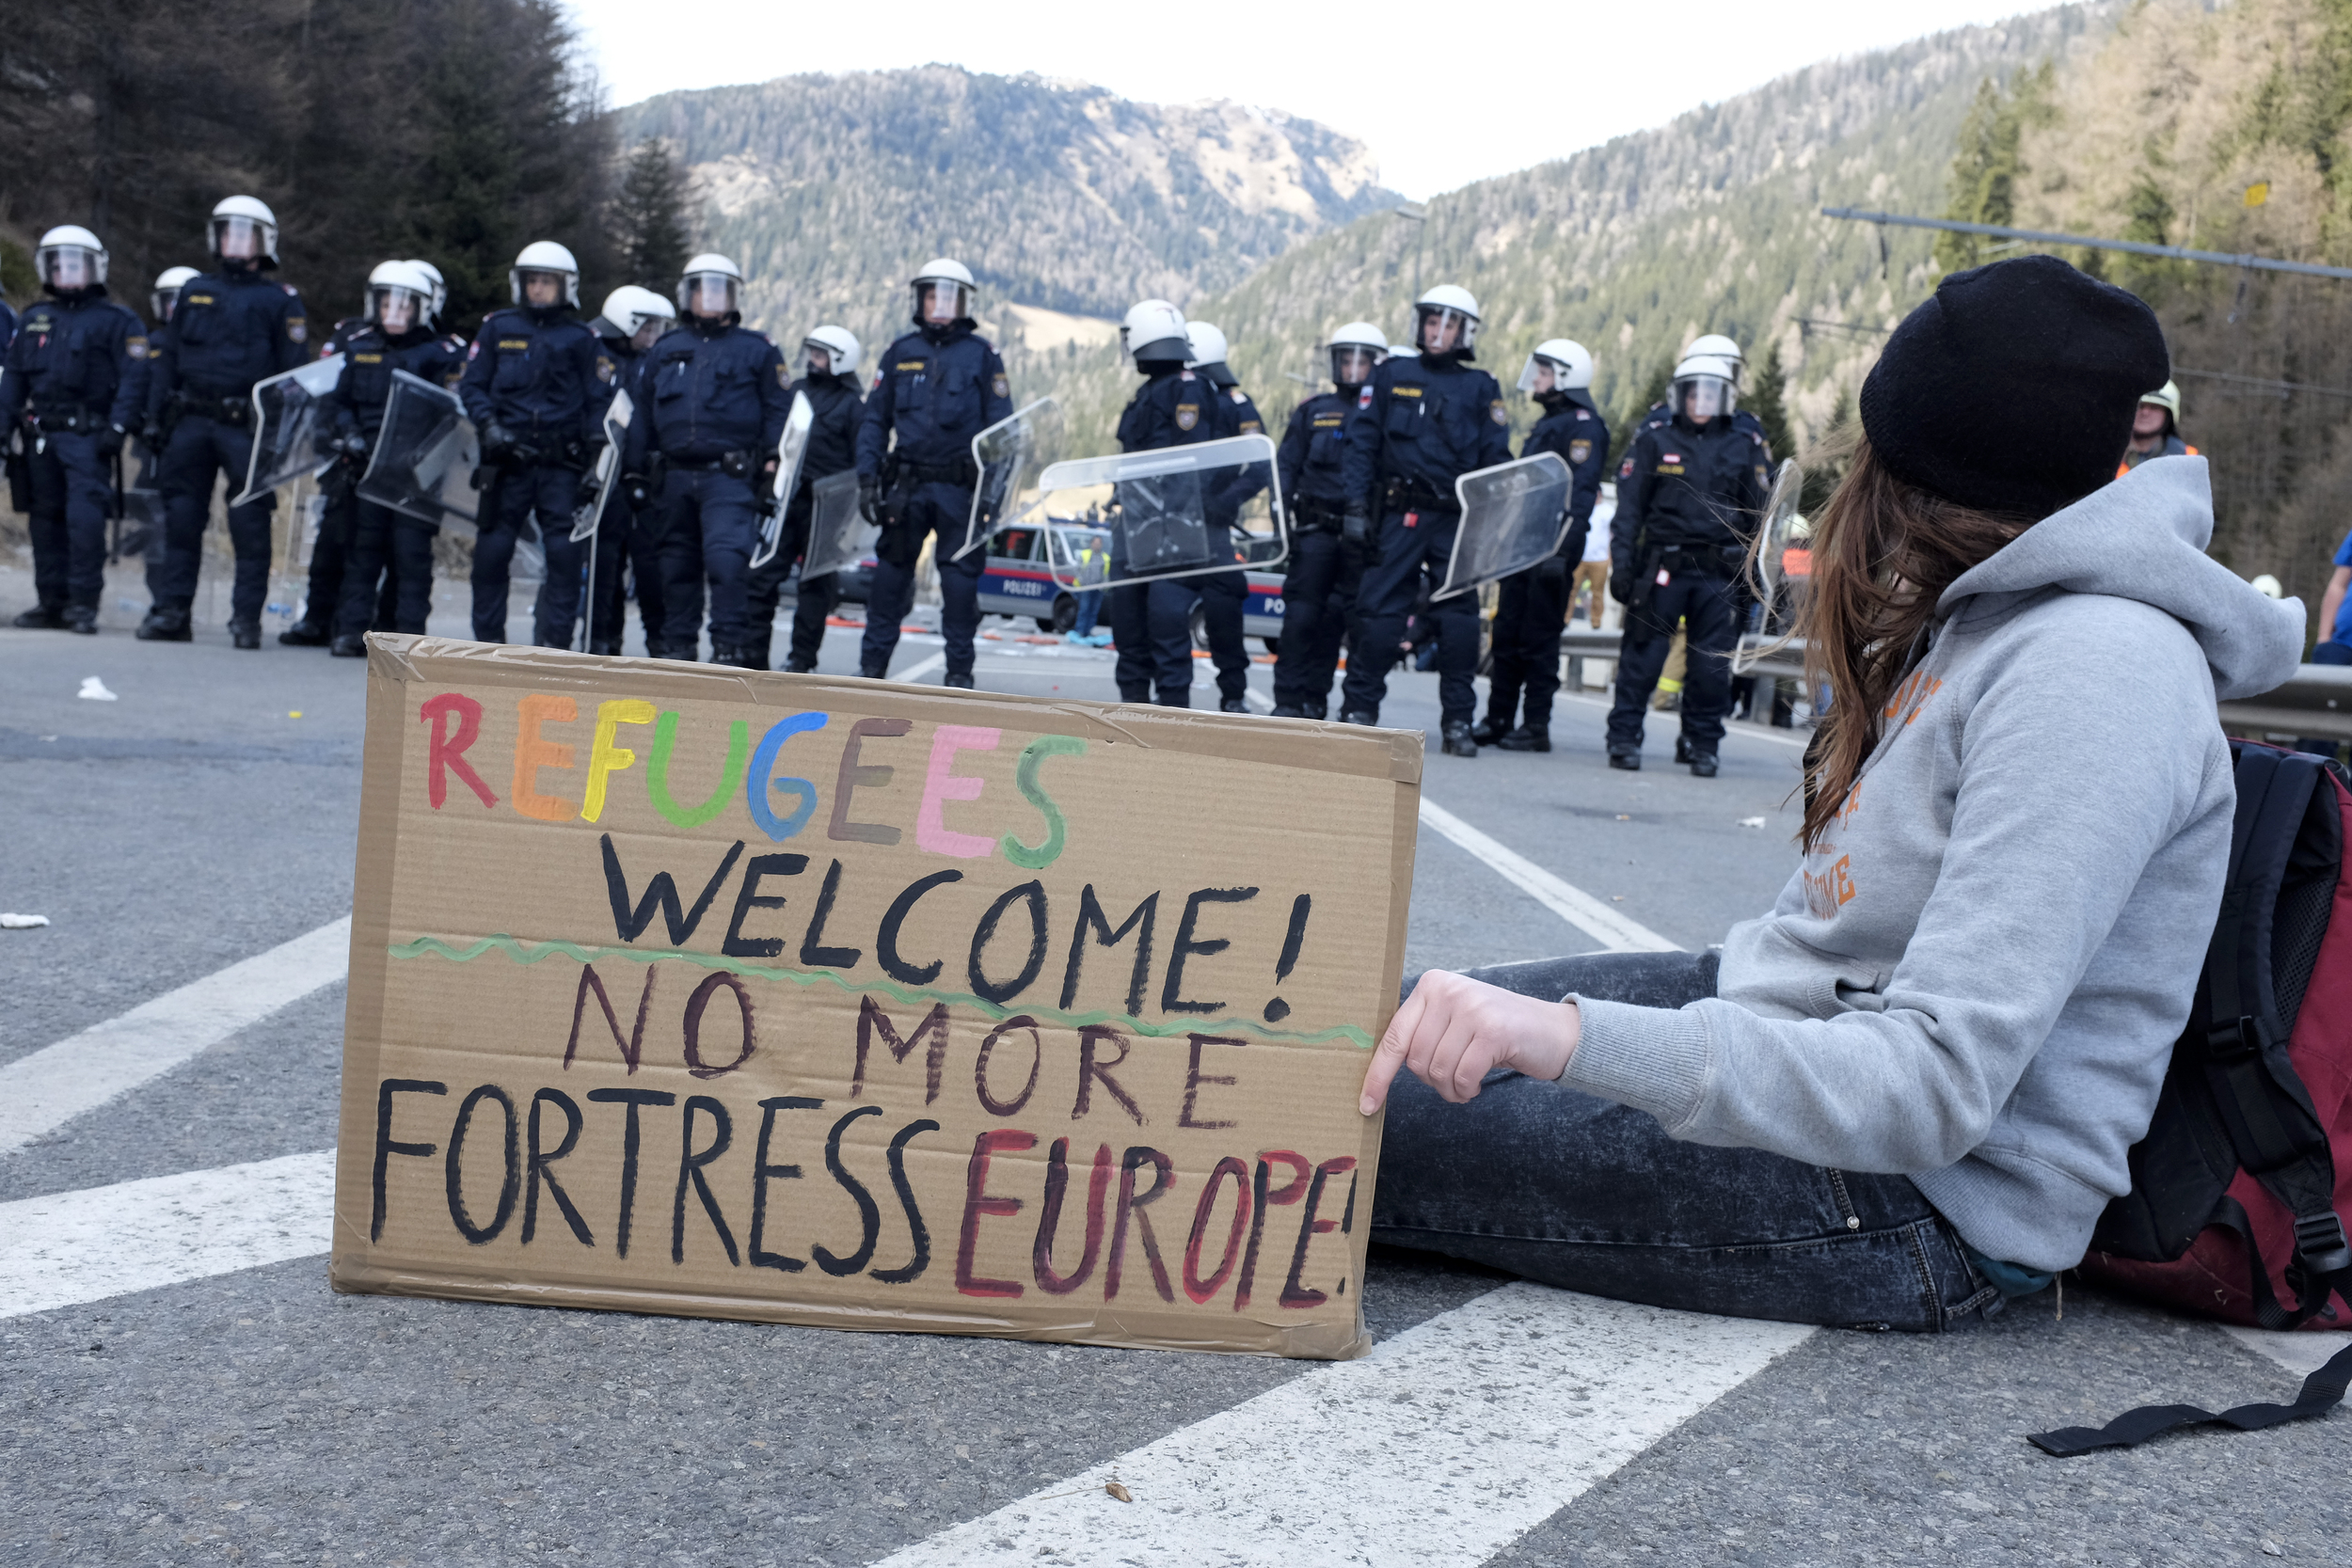 MATREI AM BRENNER, AUSTRIA - 03 APRIL 2016: The Austrian police try to control the protest against the closing of the border between Austria and Italy during the #Noborder rally held near Brennero.